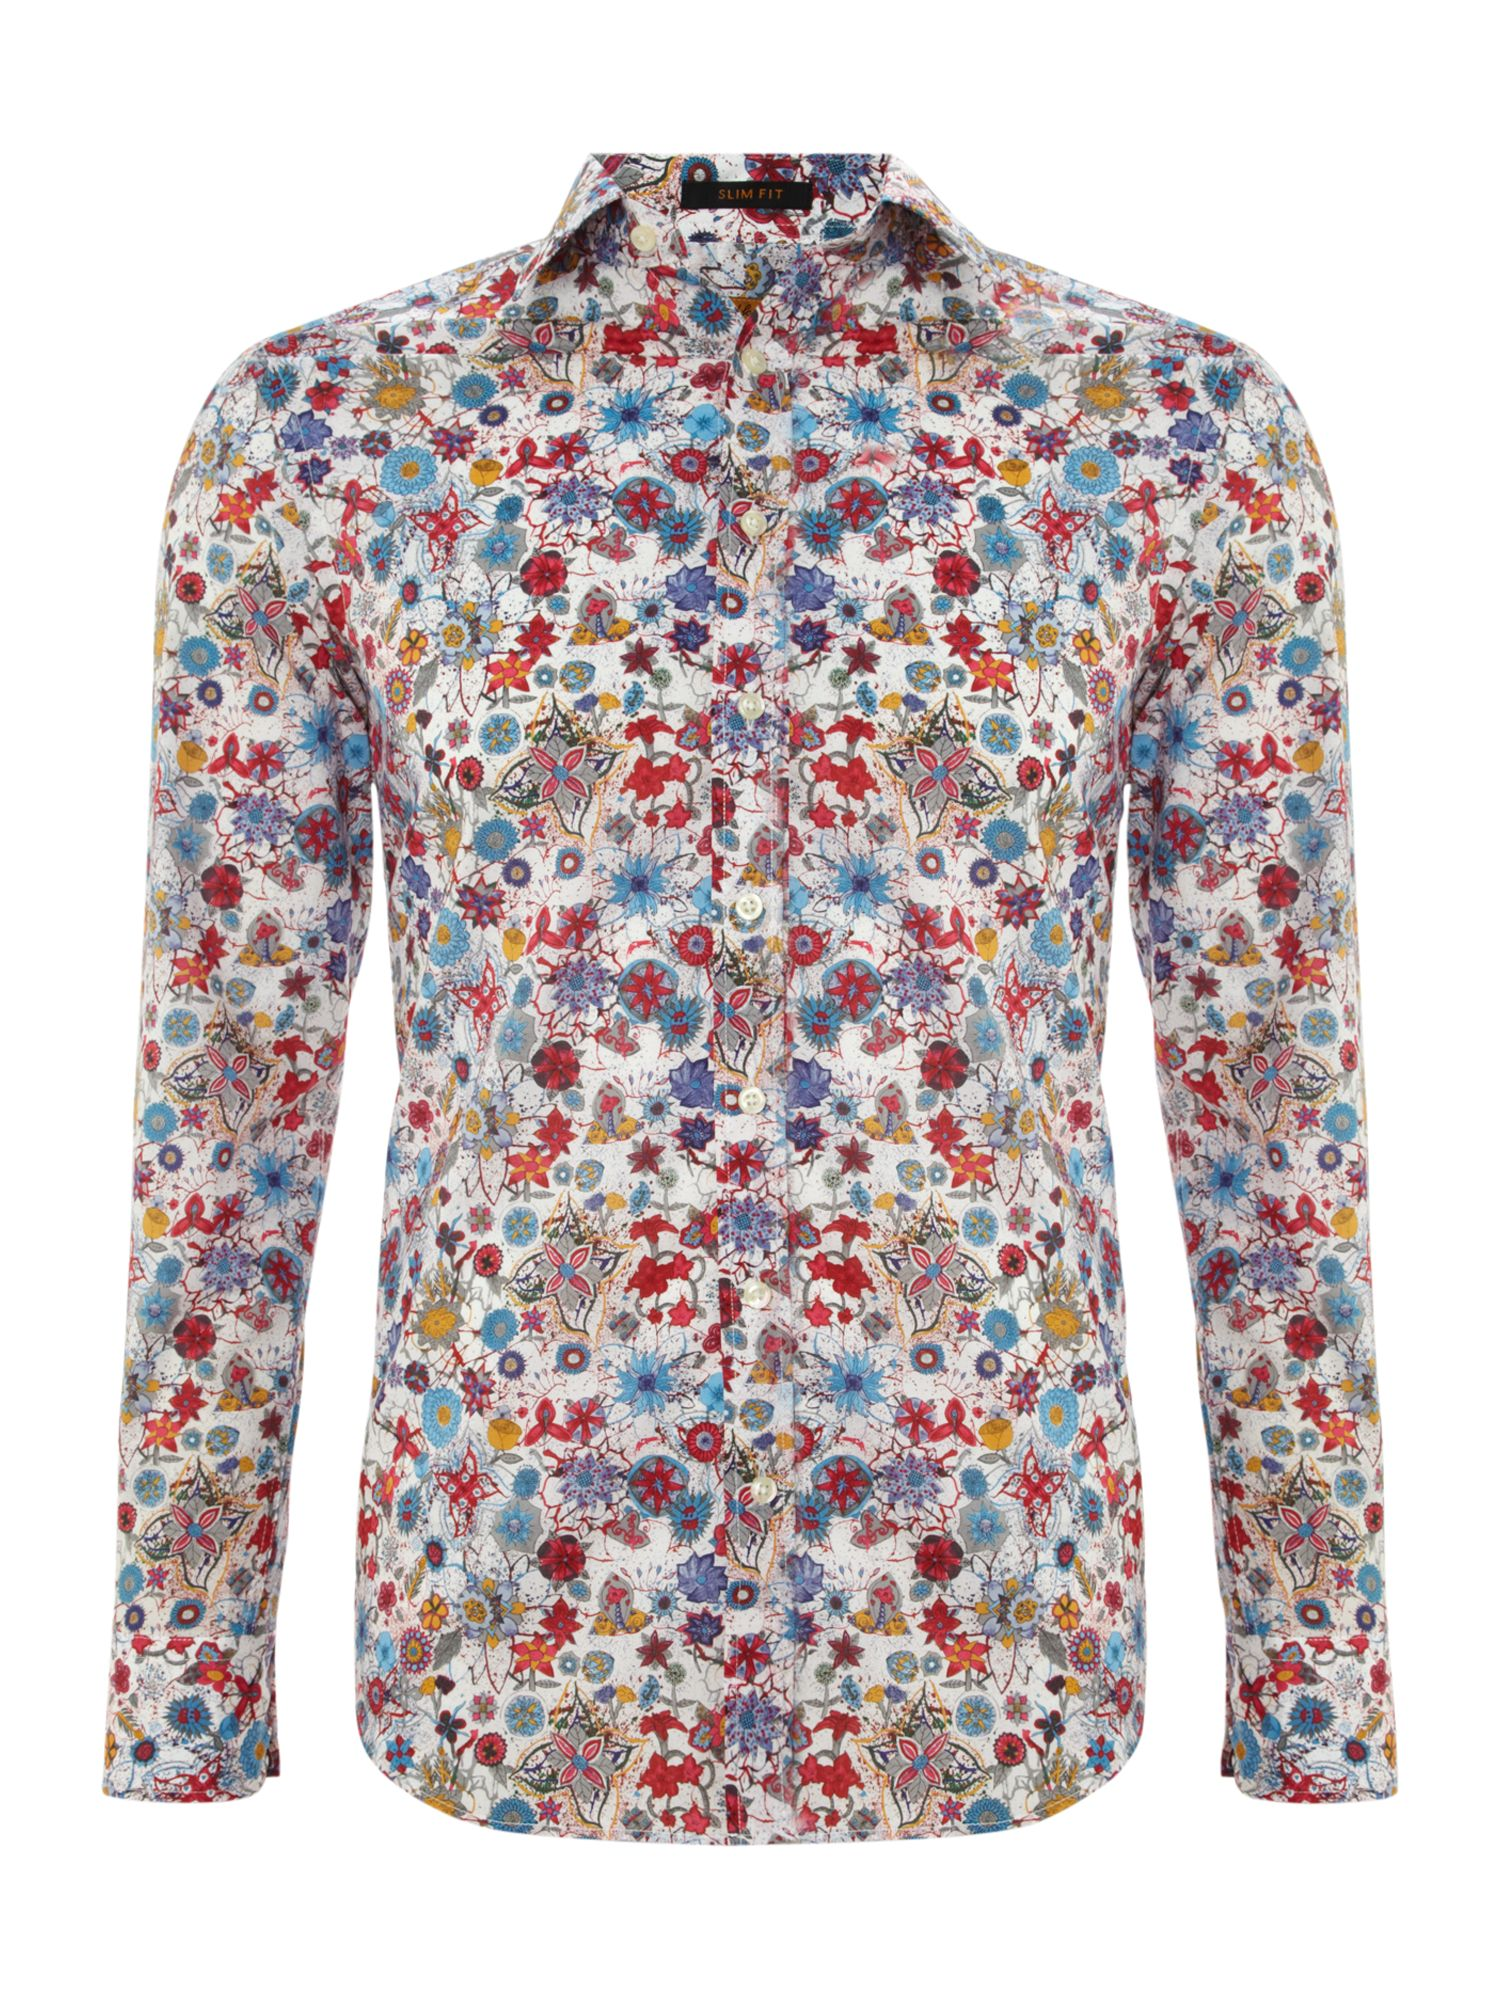 Painted flower print 3 button cuff shirt